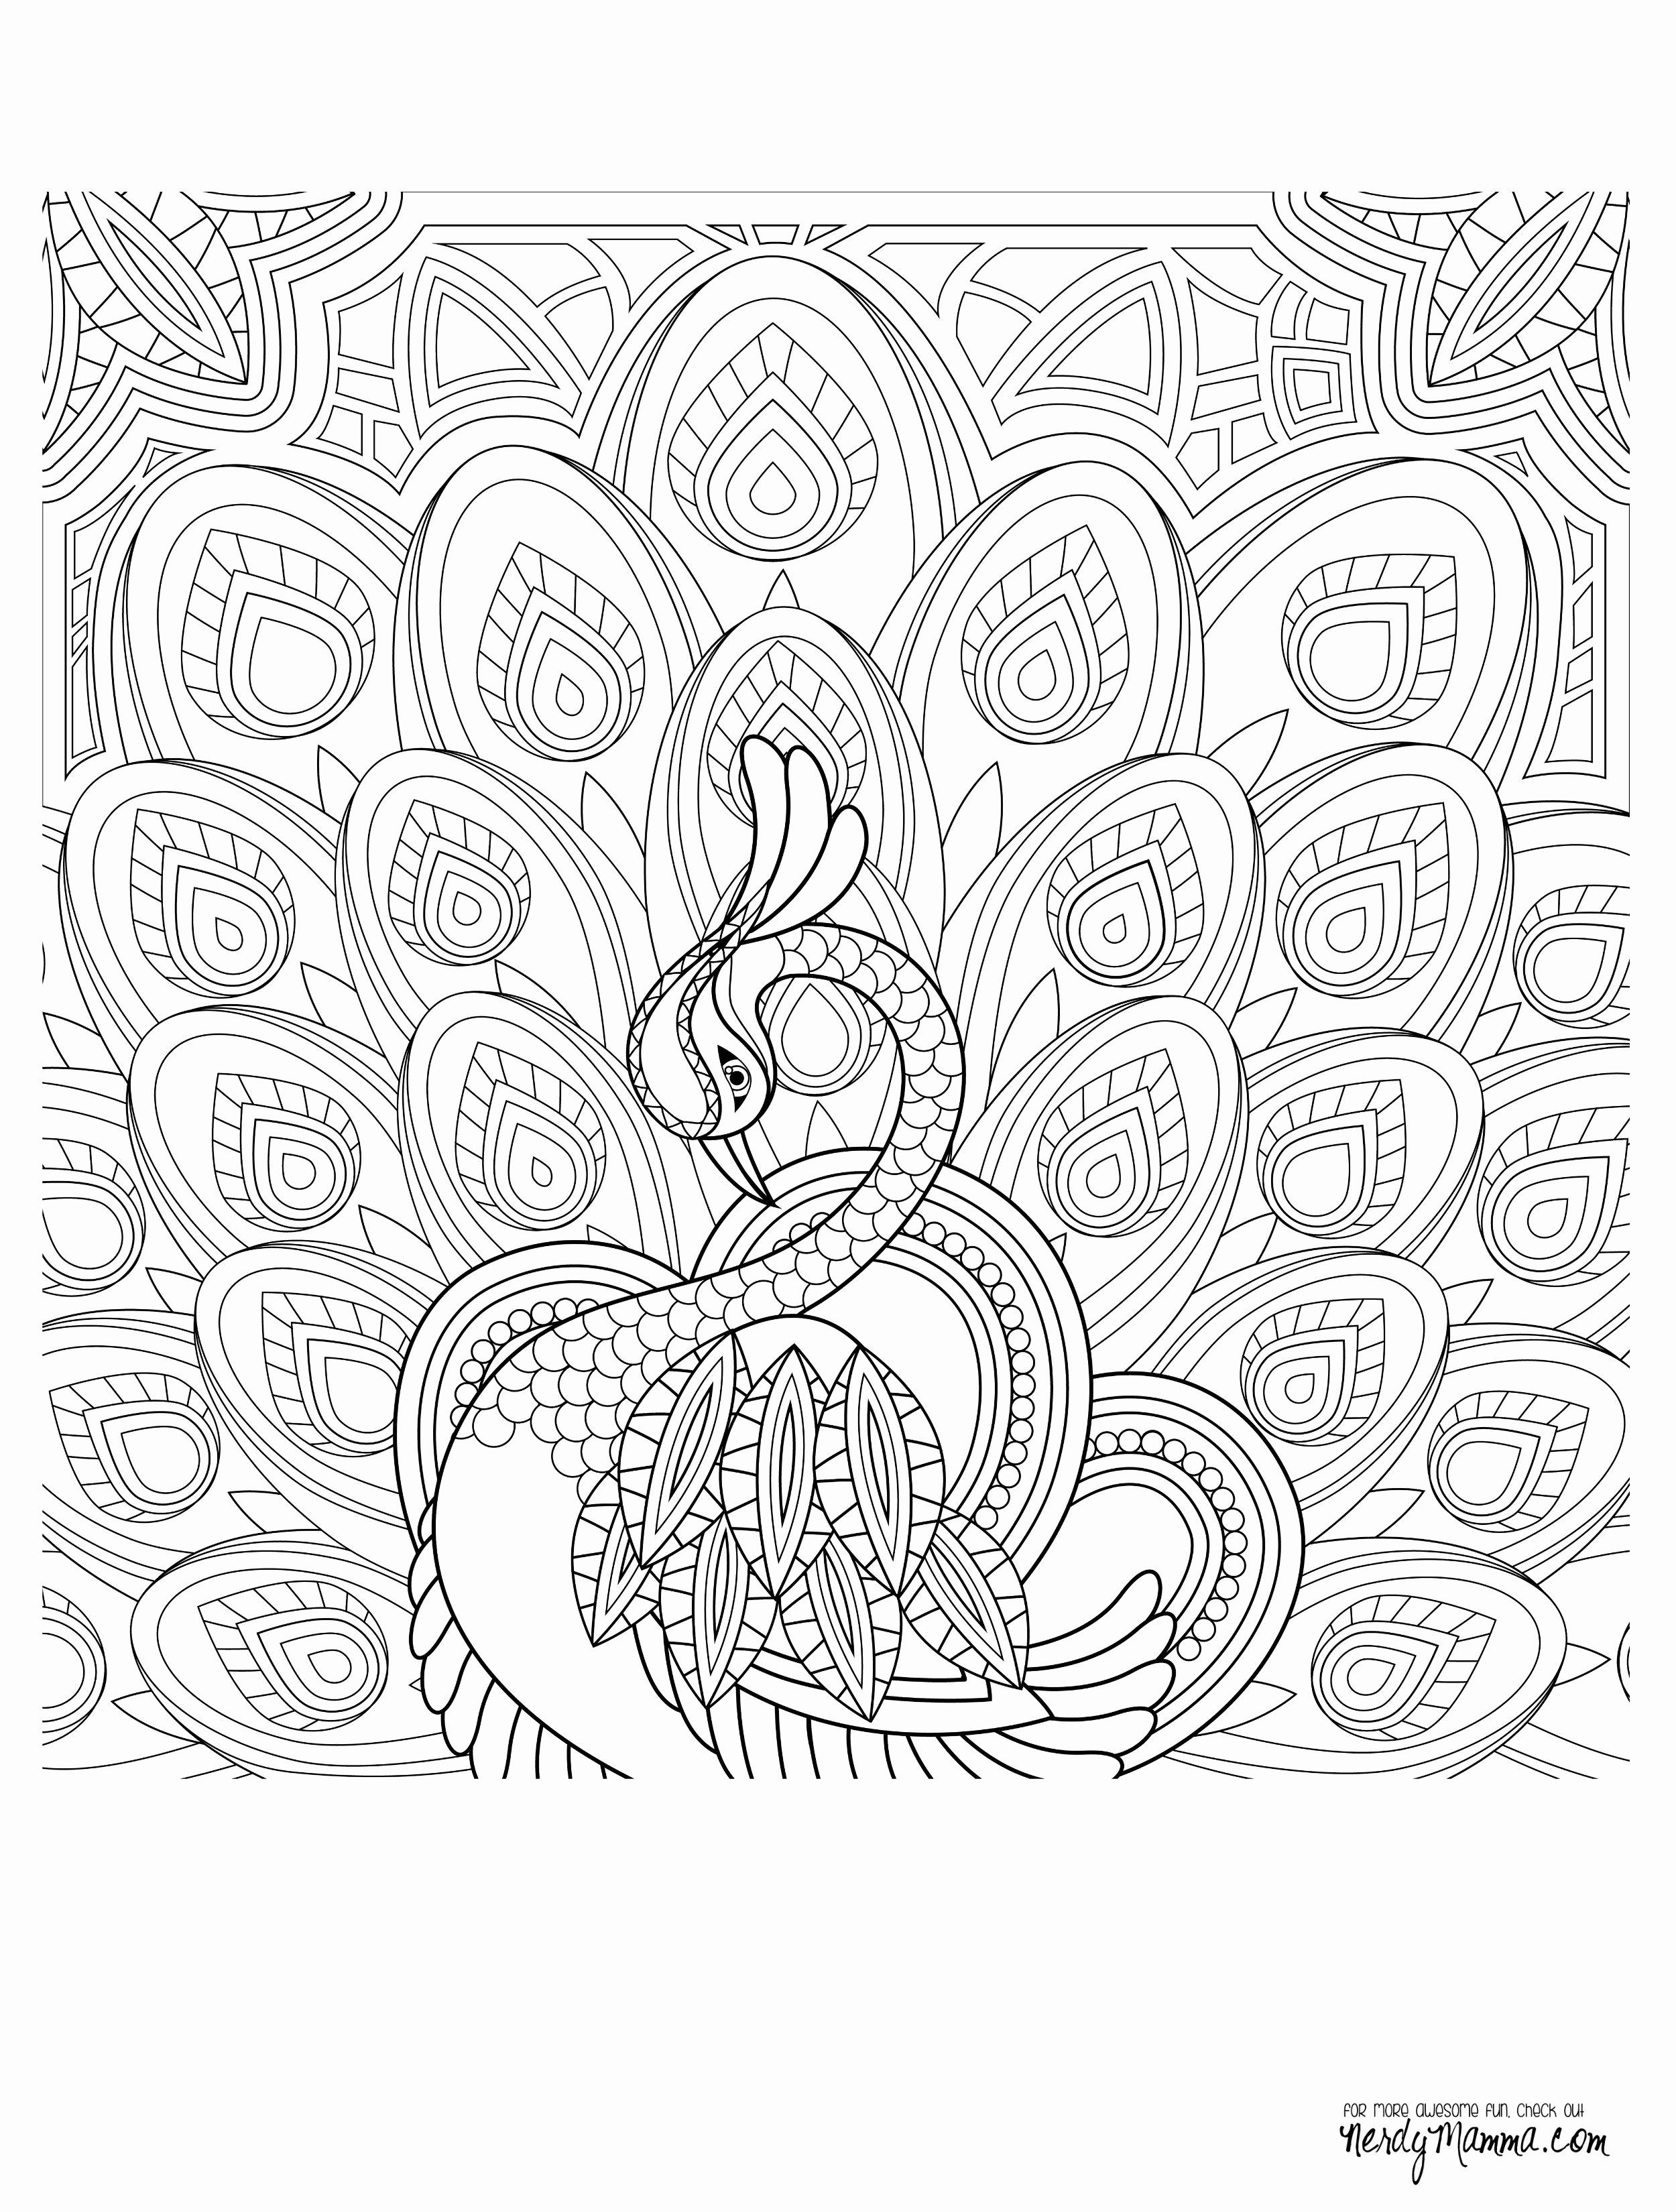 Giant Panda Coloring Pages  to Print 8s - Free Download